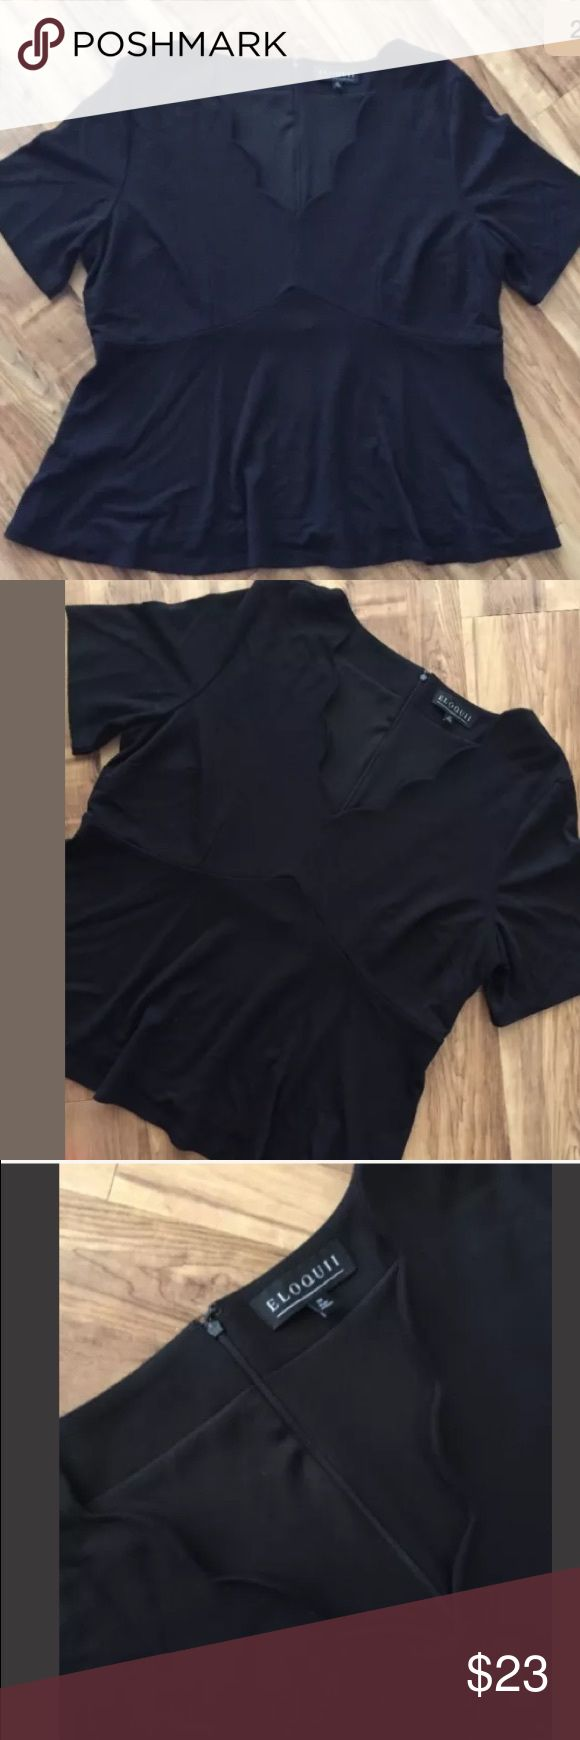 Eloquii Black Scallop Peplum top Plus Size 20 Eloquii Black Scallop Peplum top Women's Plus Size 20  Zip up back  Armpit to armpit is 23 inches  Shoulder to bottom is 25 inches  Great condition! Eloquii Tops Blouses